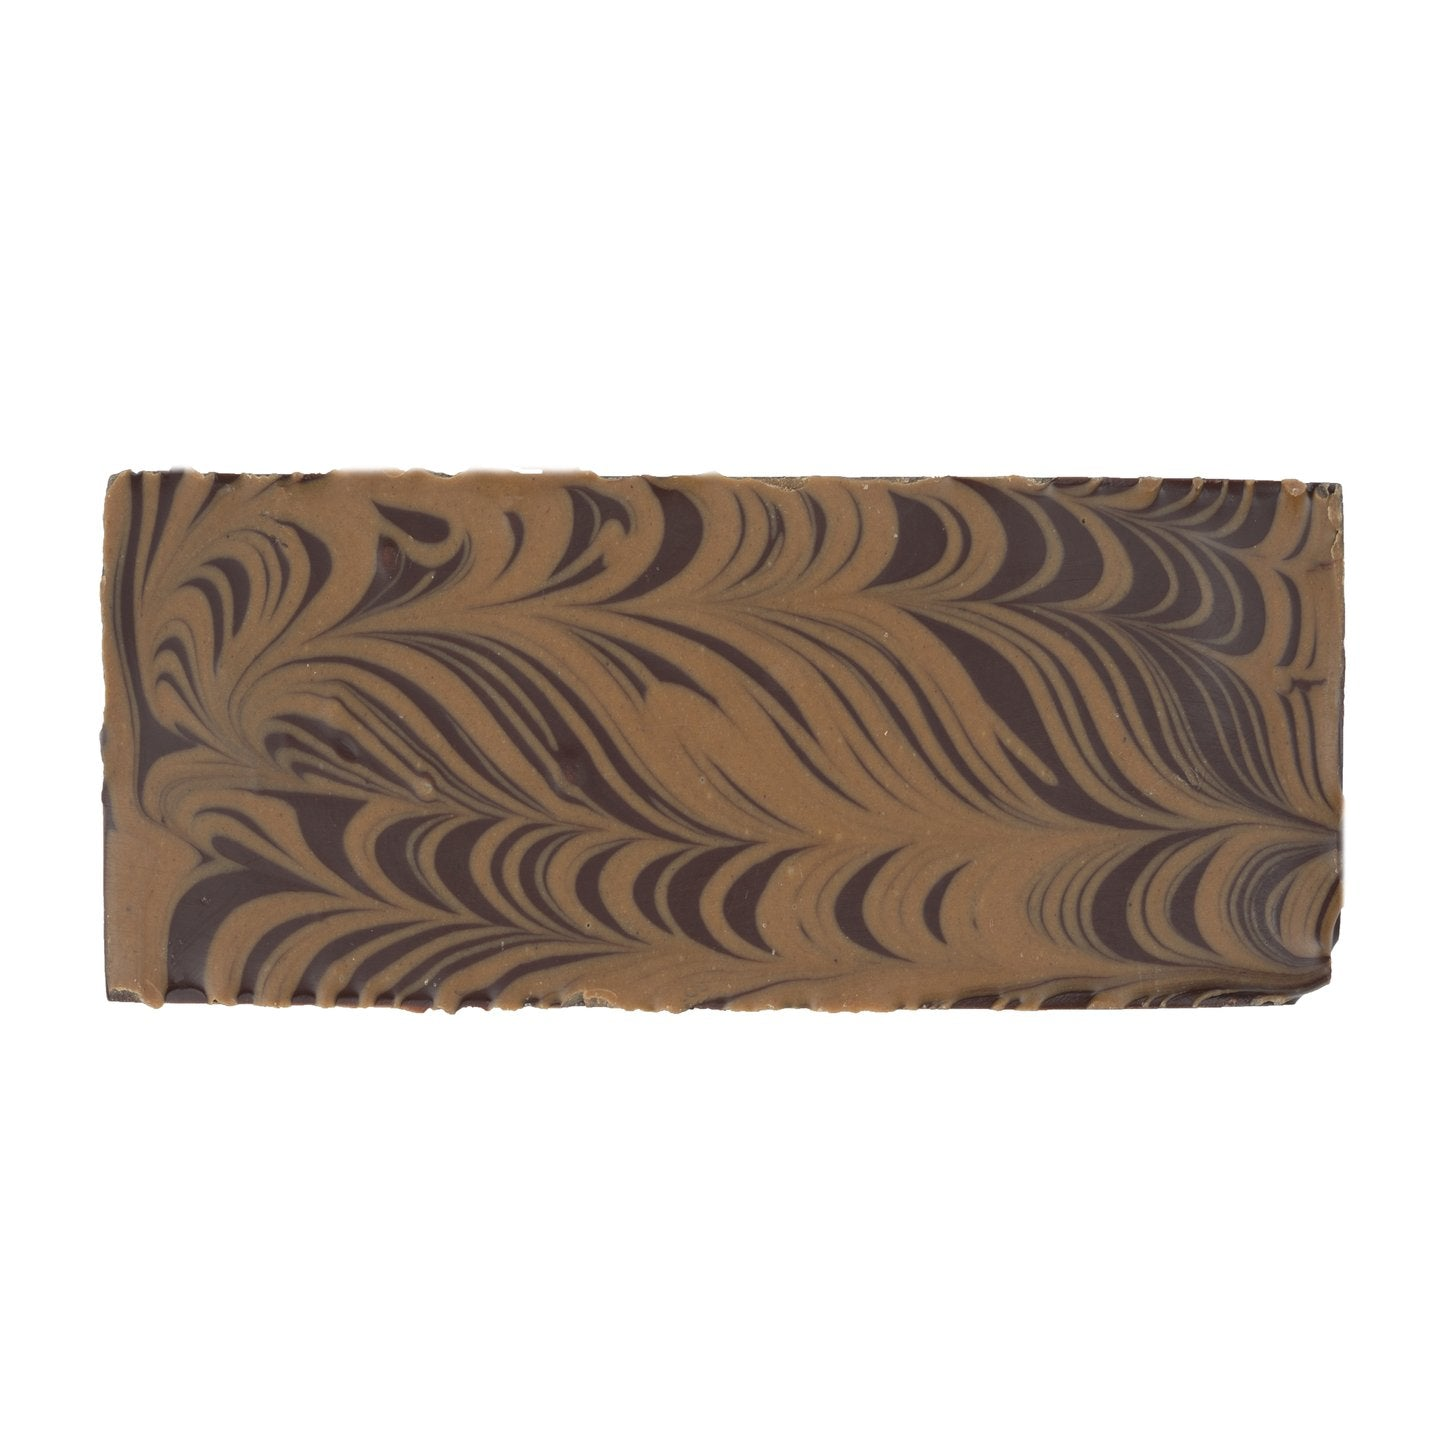 Jaguar Swirl | 70% Albino & Red Cacao Dark Chocolate Bar | Chocosol Traders